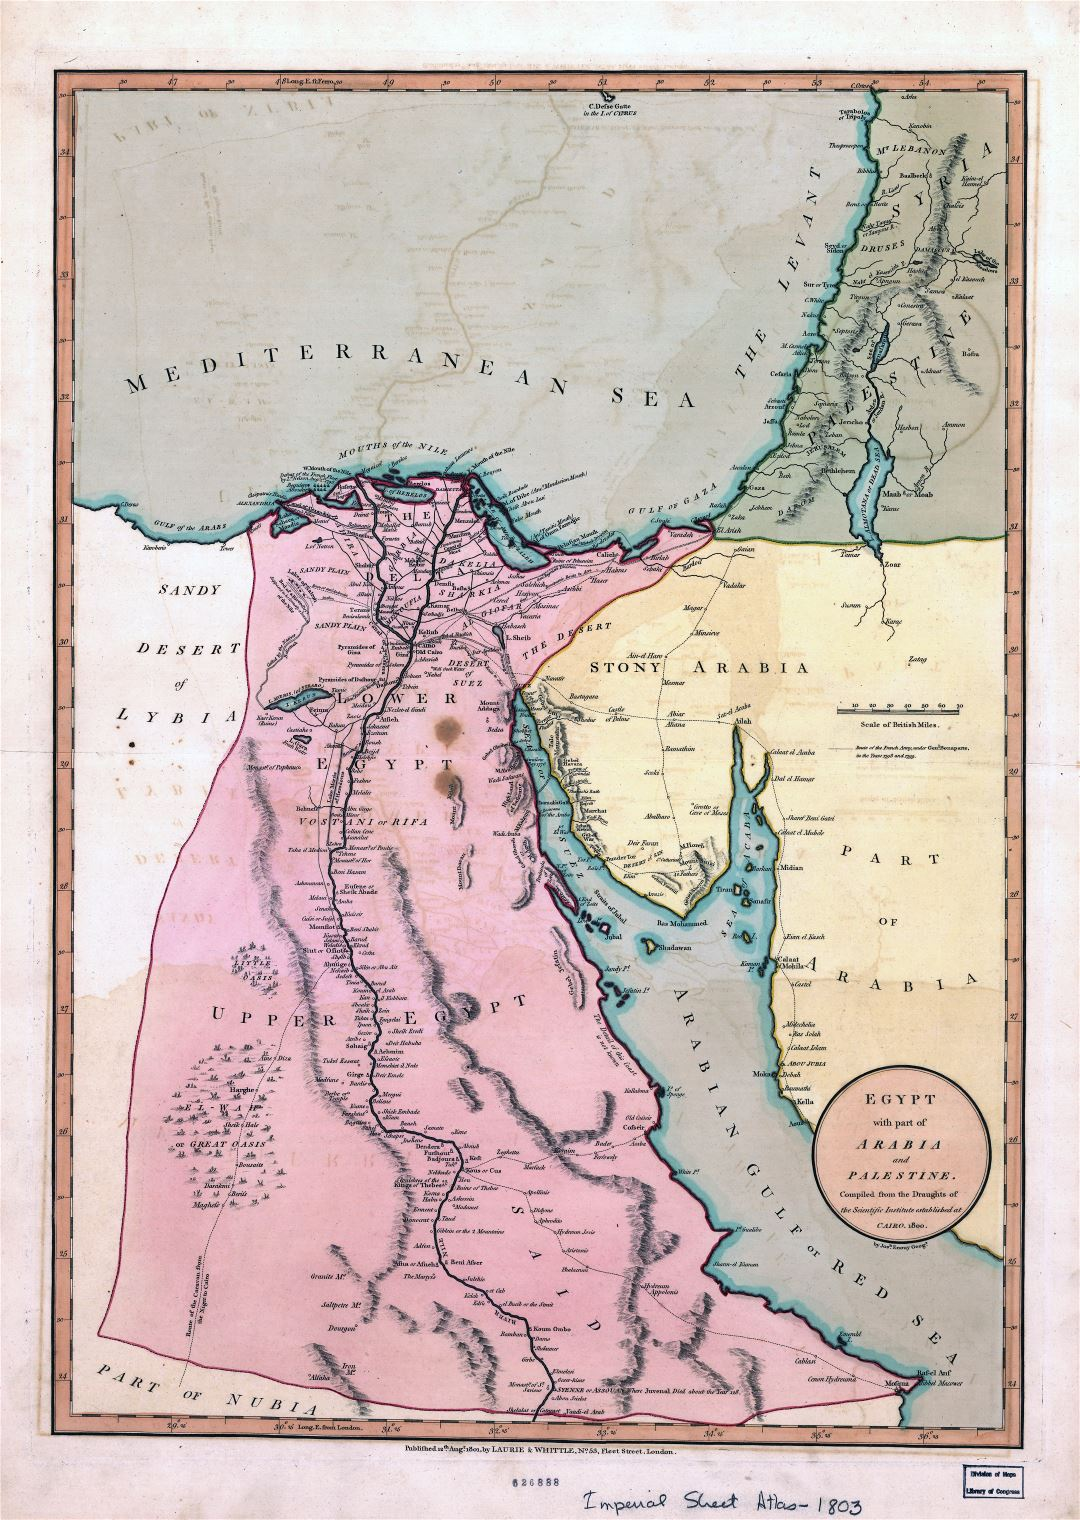 Large scale old map of Egypt with part of Arabia and Palestine - 1800